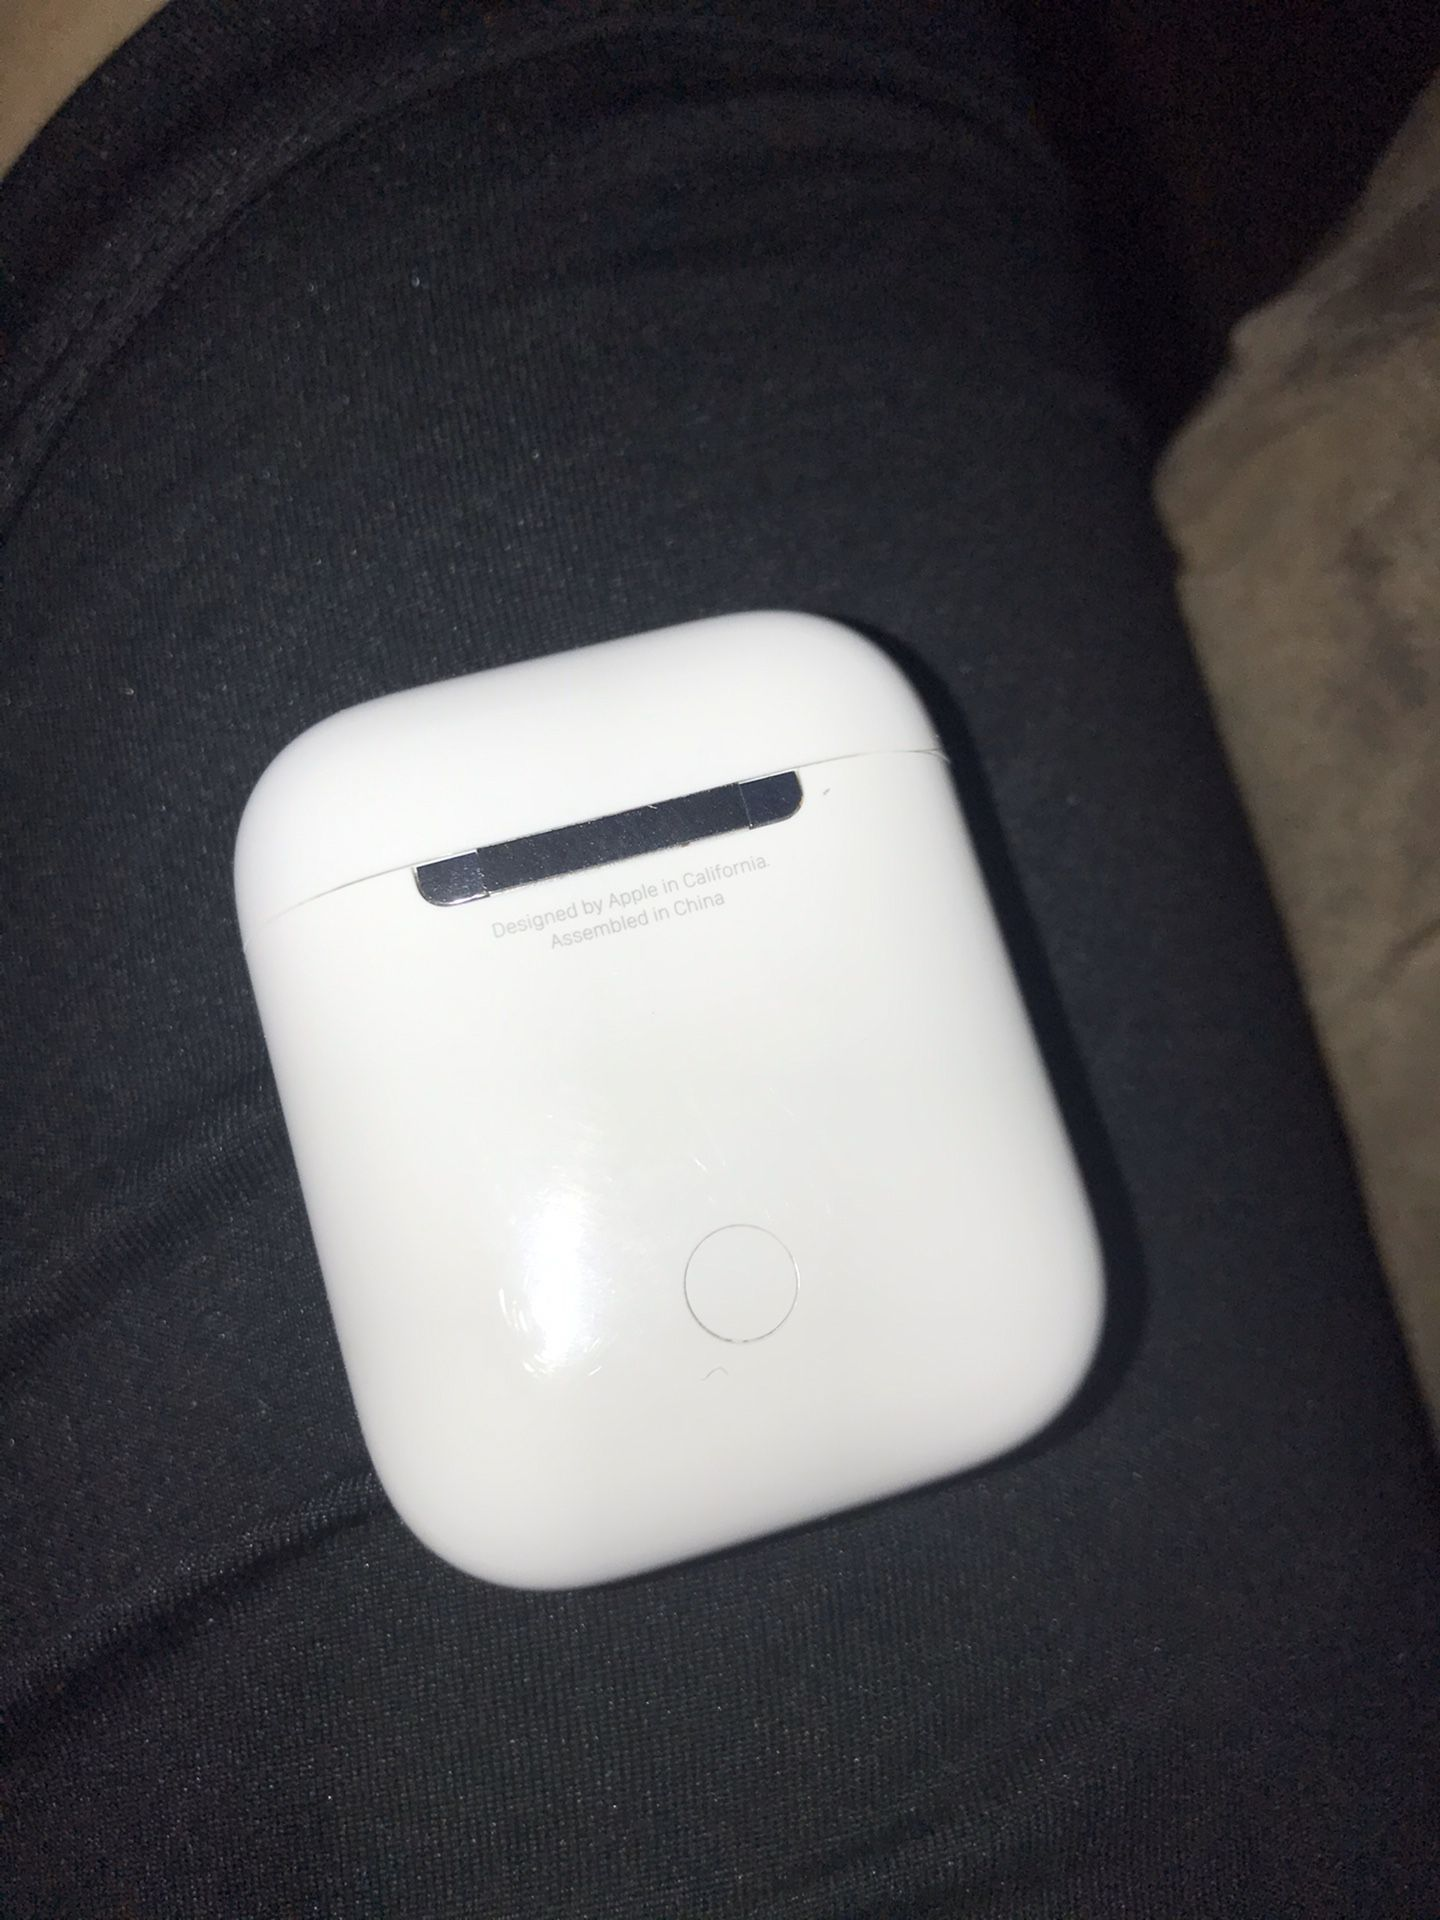 Airpod Charging Case (gen 2)